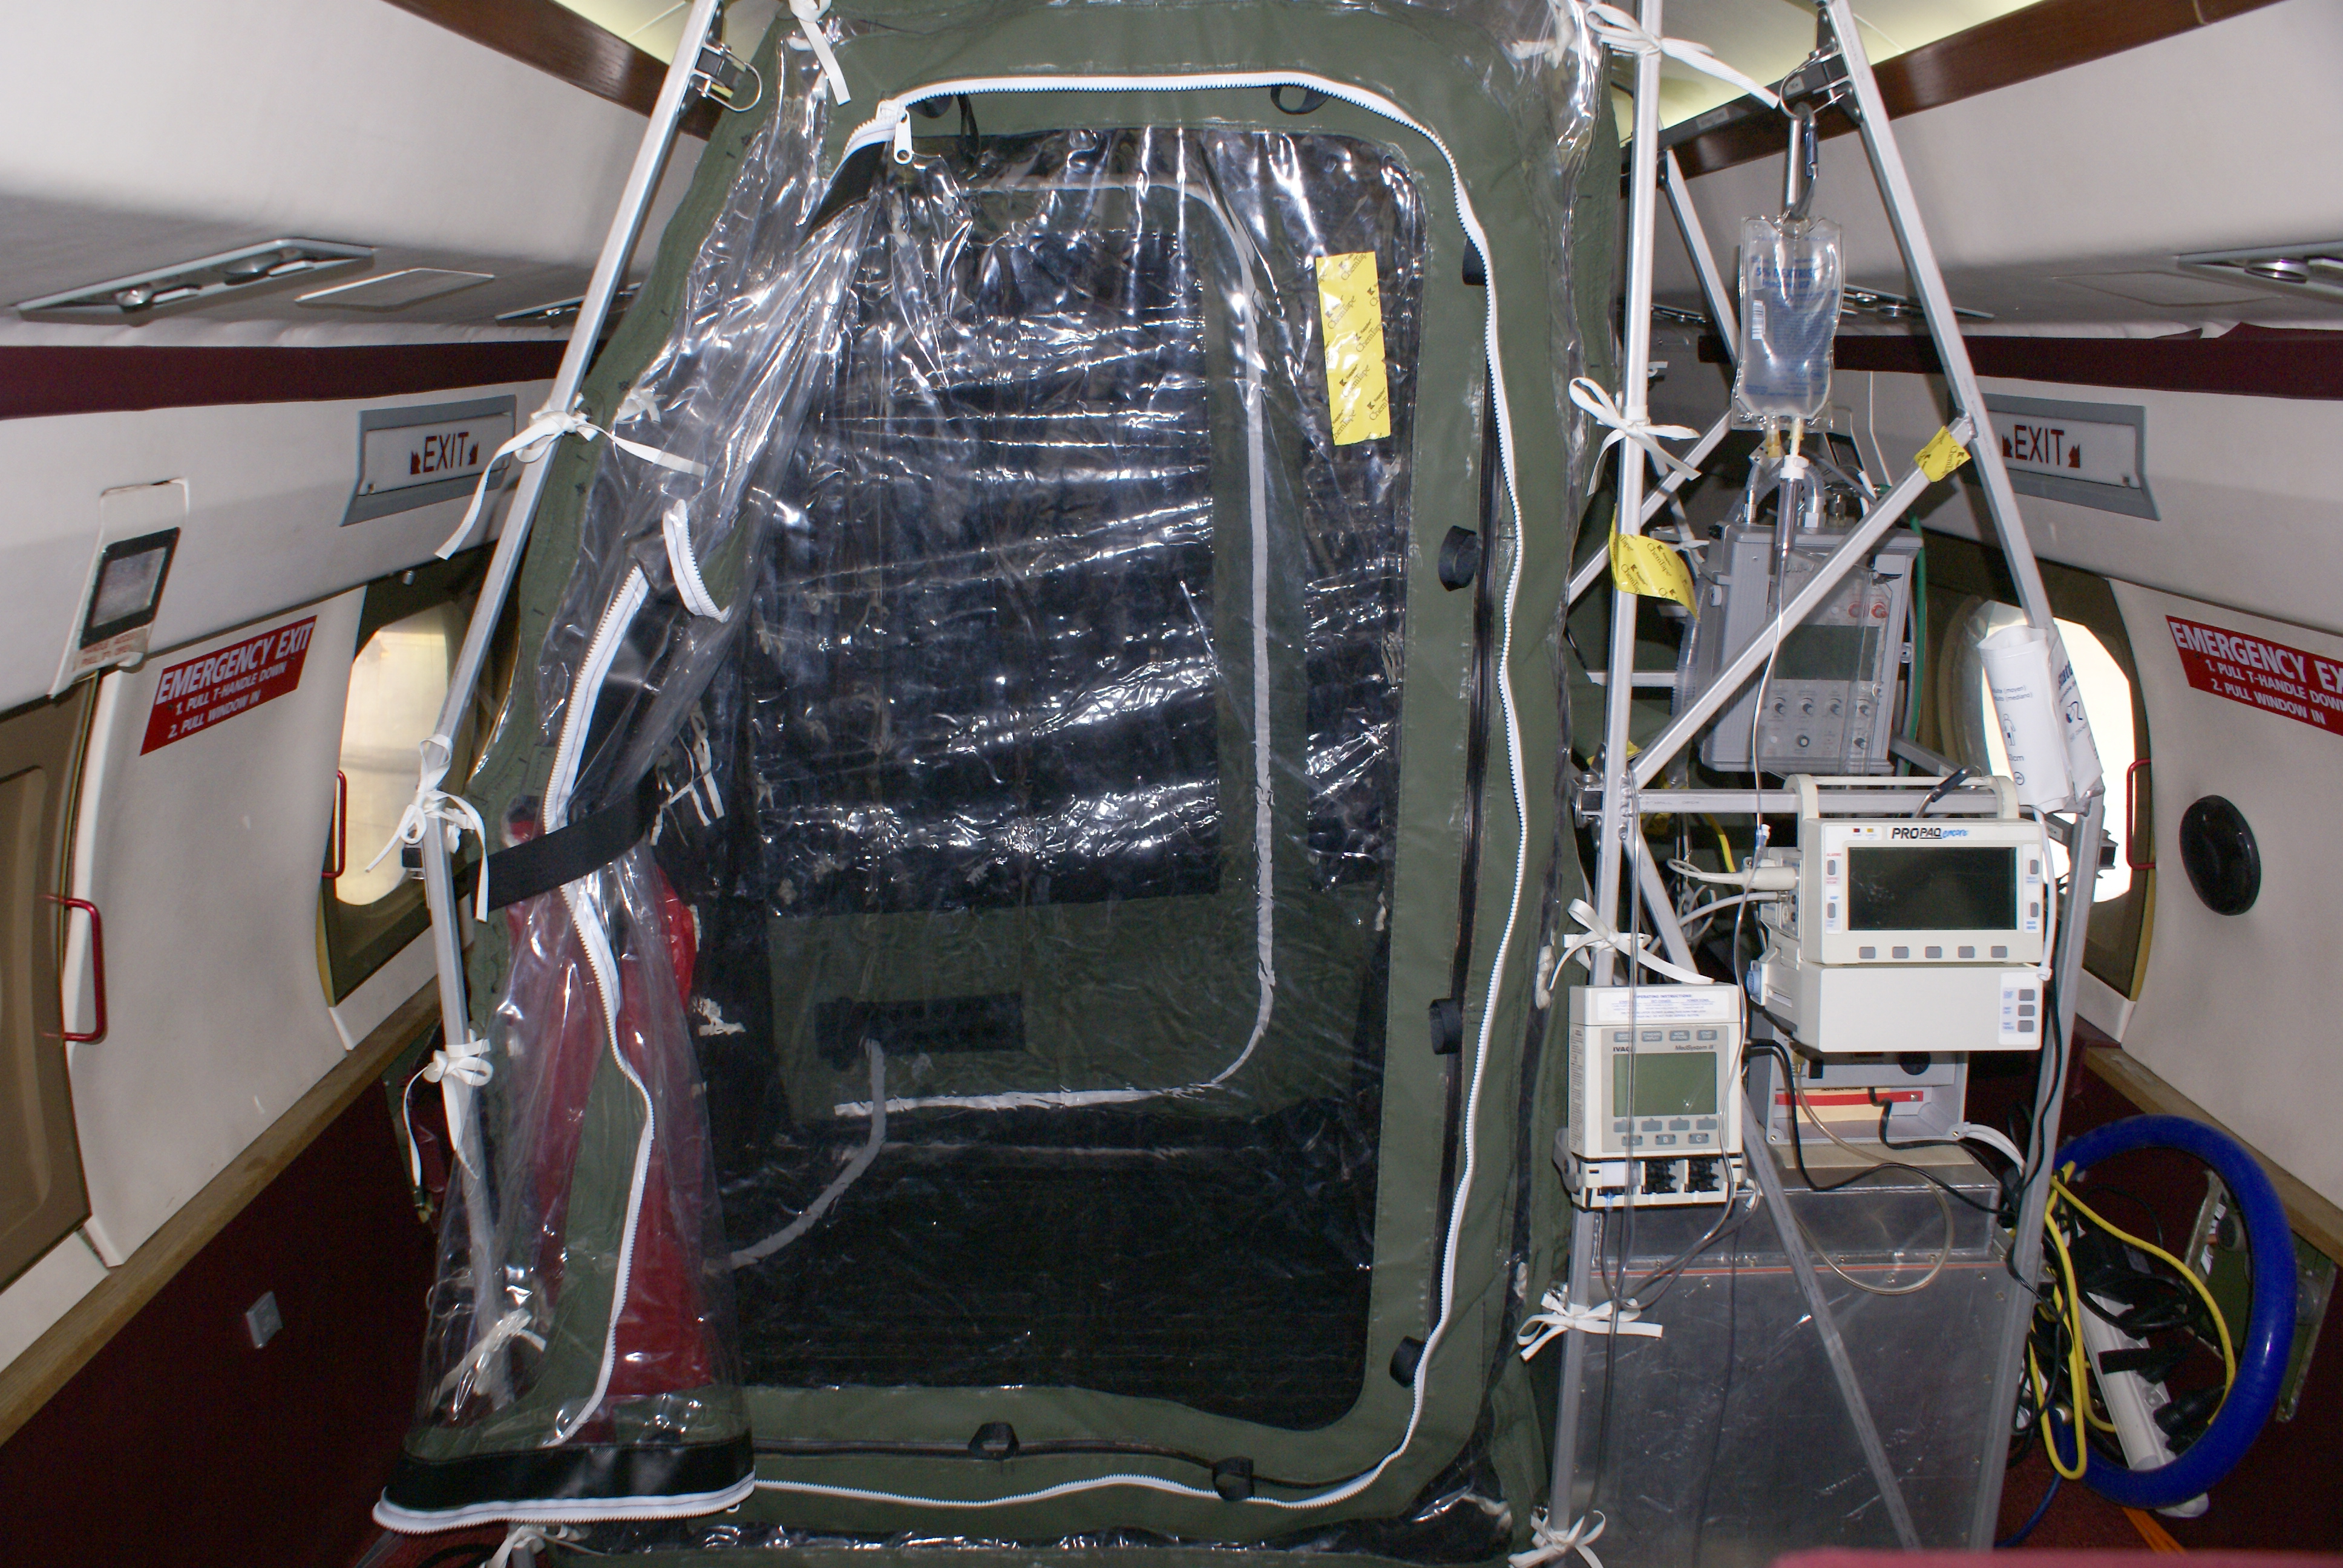 The Aeromedical Biological Containment System (ABCS), which houses the patients on their flight